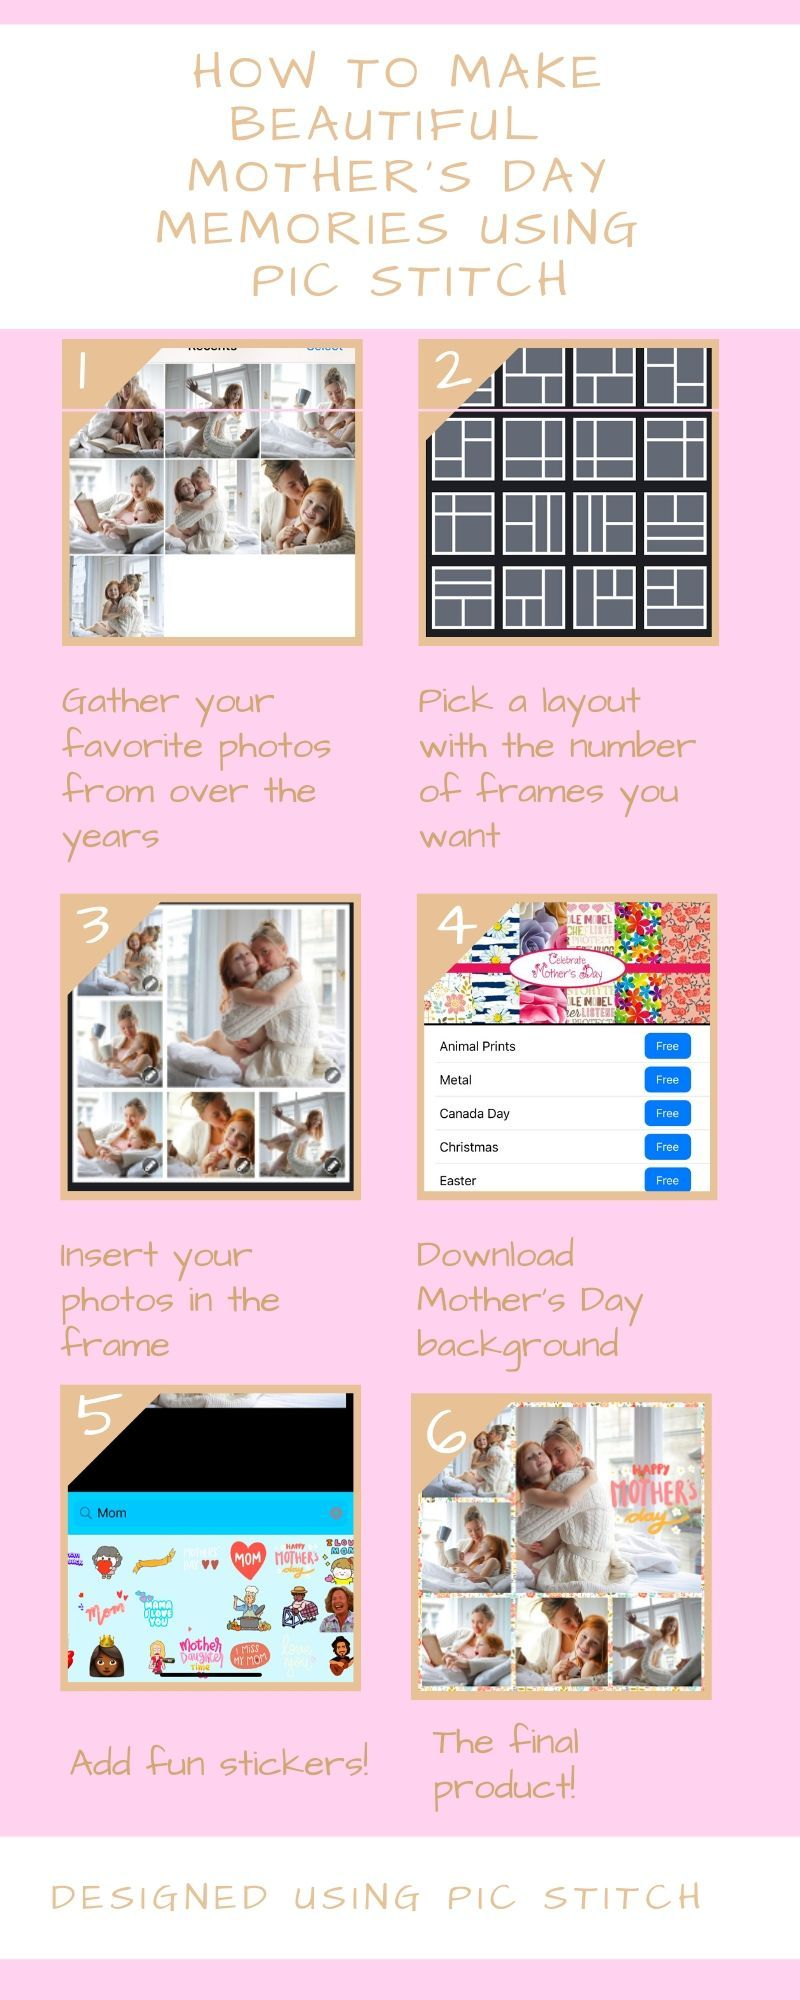 Pin on Our Favorite Photo Apps